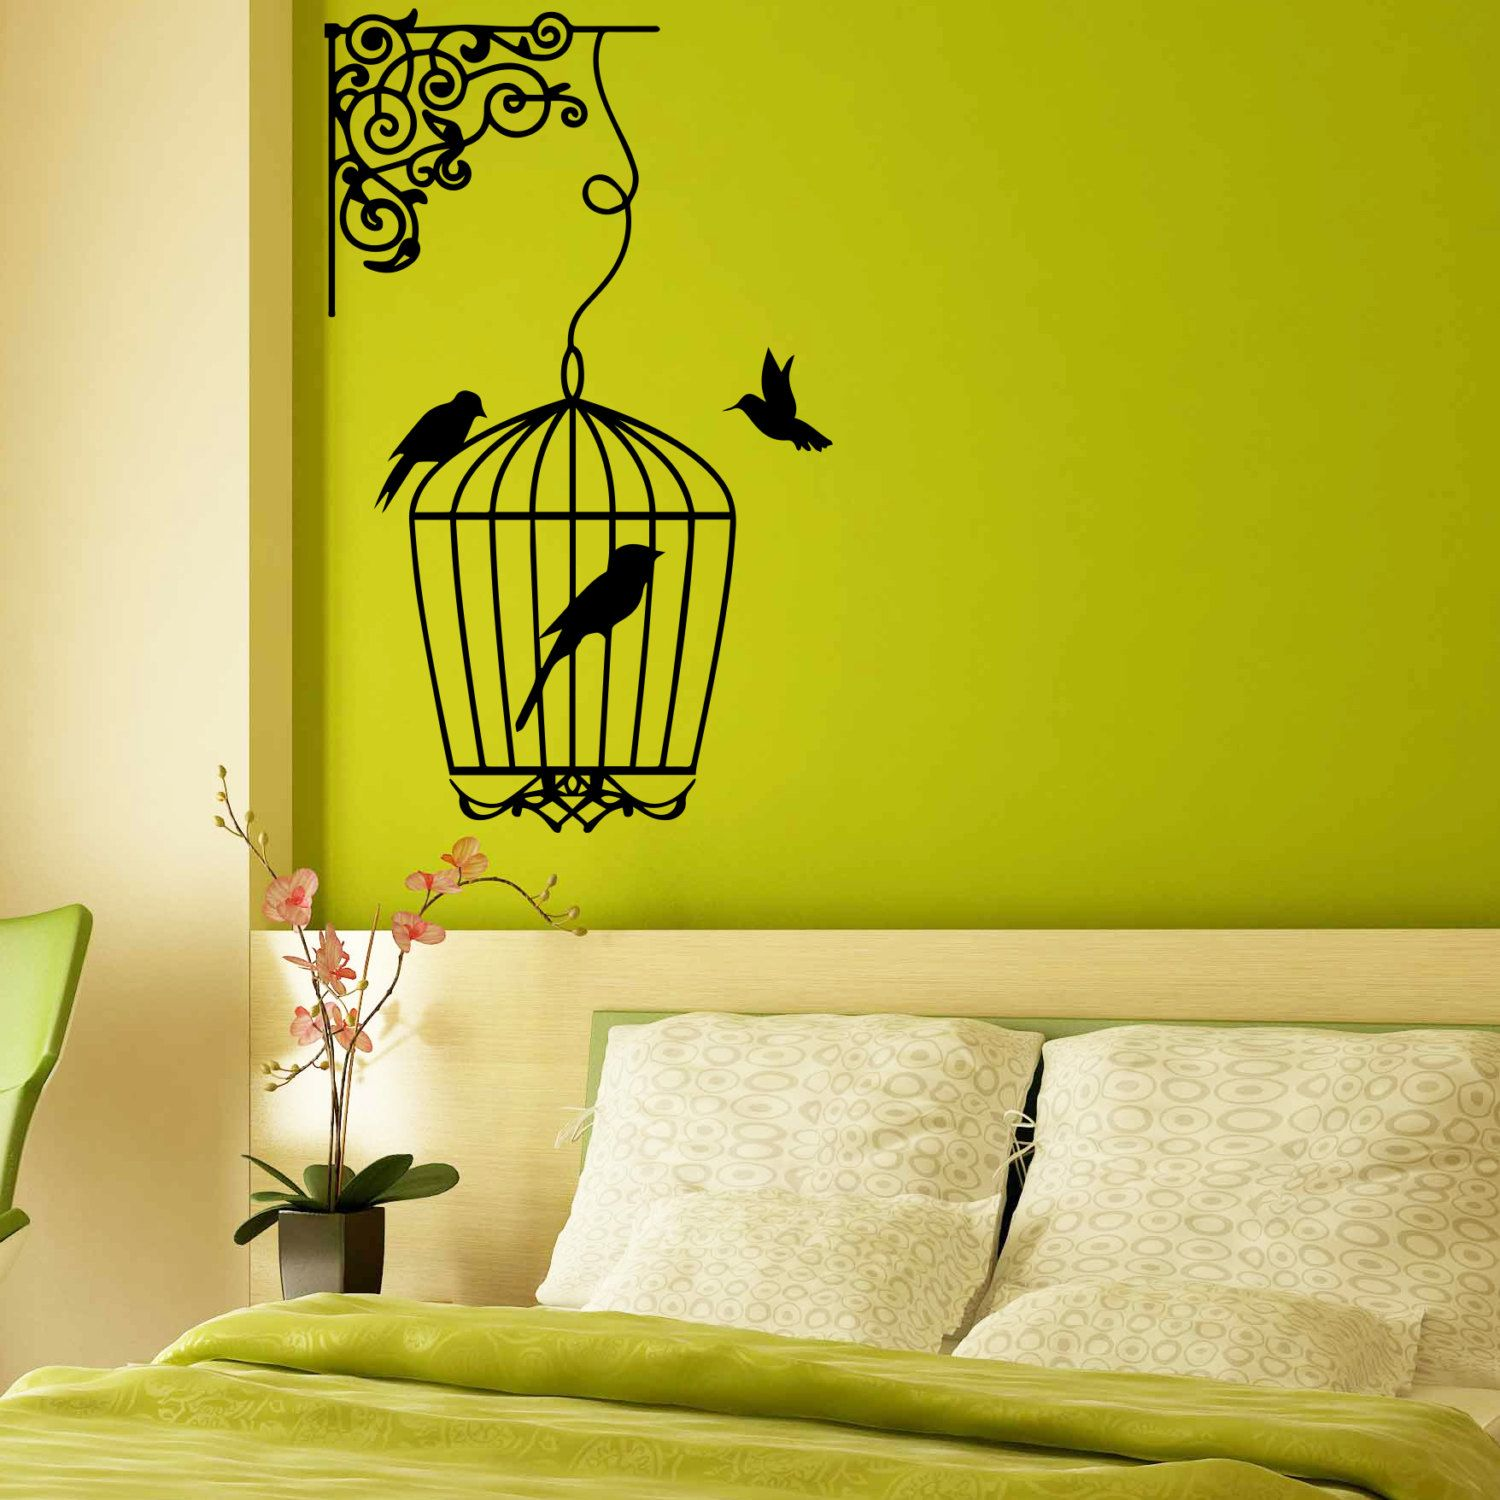 Wall Decal Bird Cages With Birds Design Wall by DecalsfromDavid ...